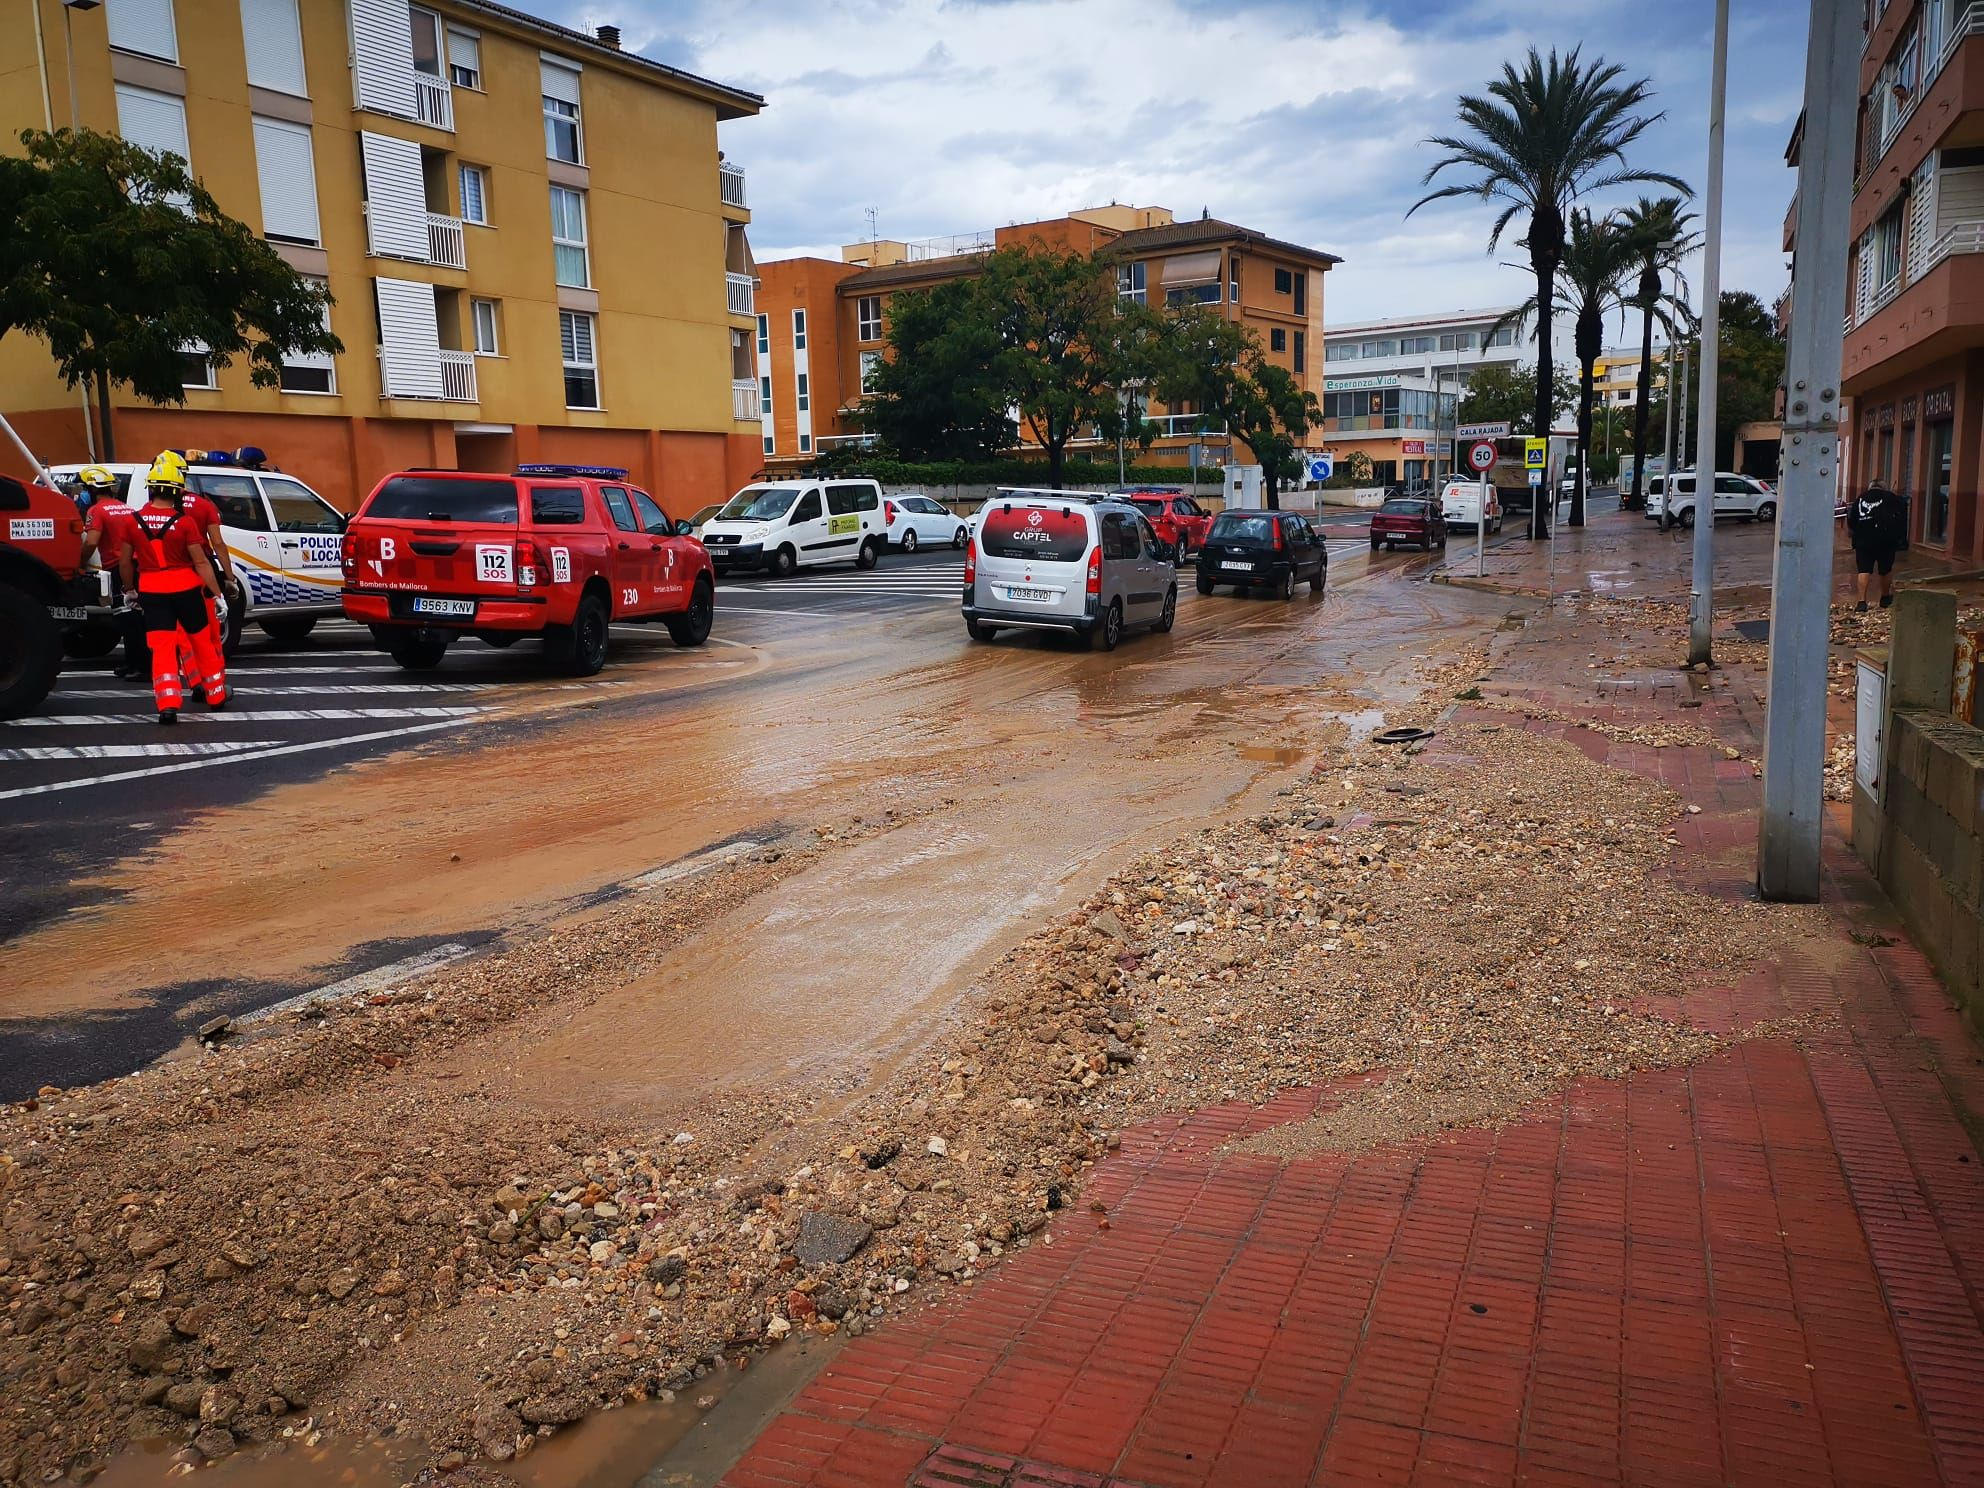 Intensas lluvias e incidentes en el noreste de Mallorca